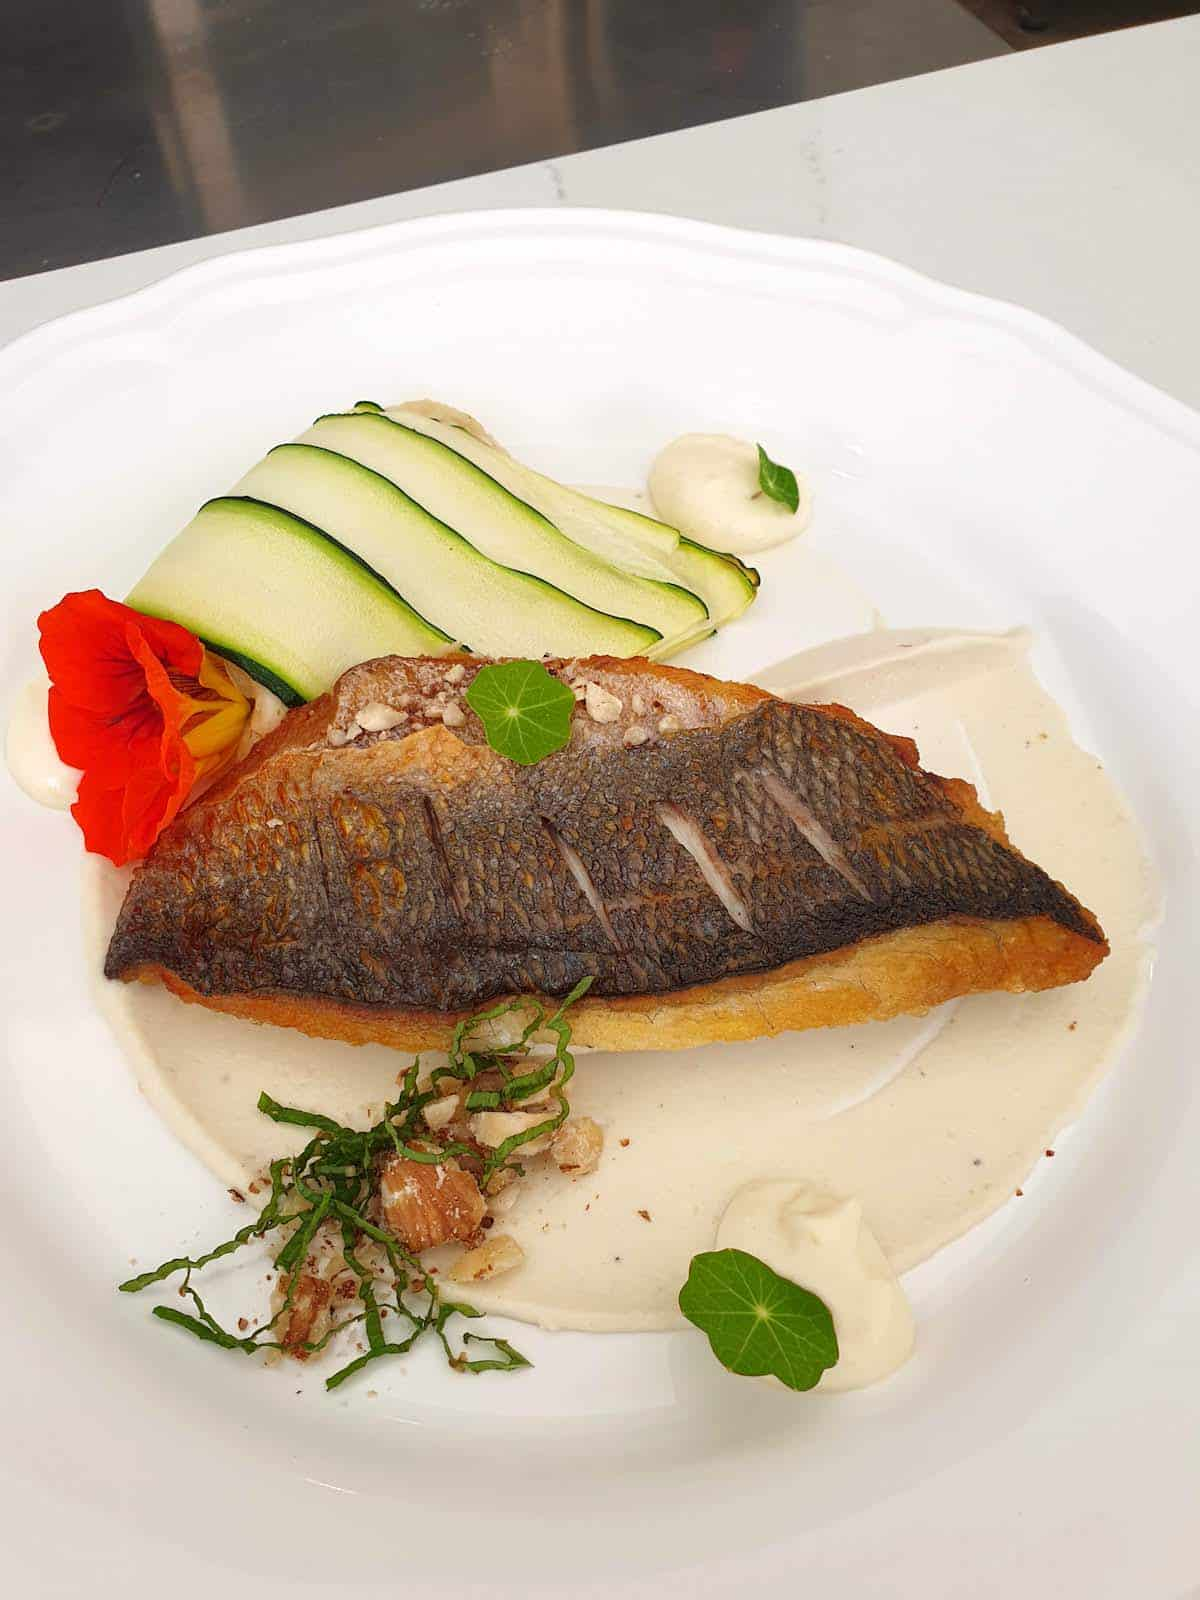 Piece of fish on a white plate garnished with green vegetables, white sauce, and a red flower